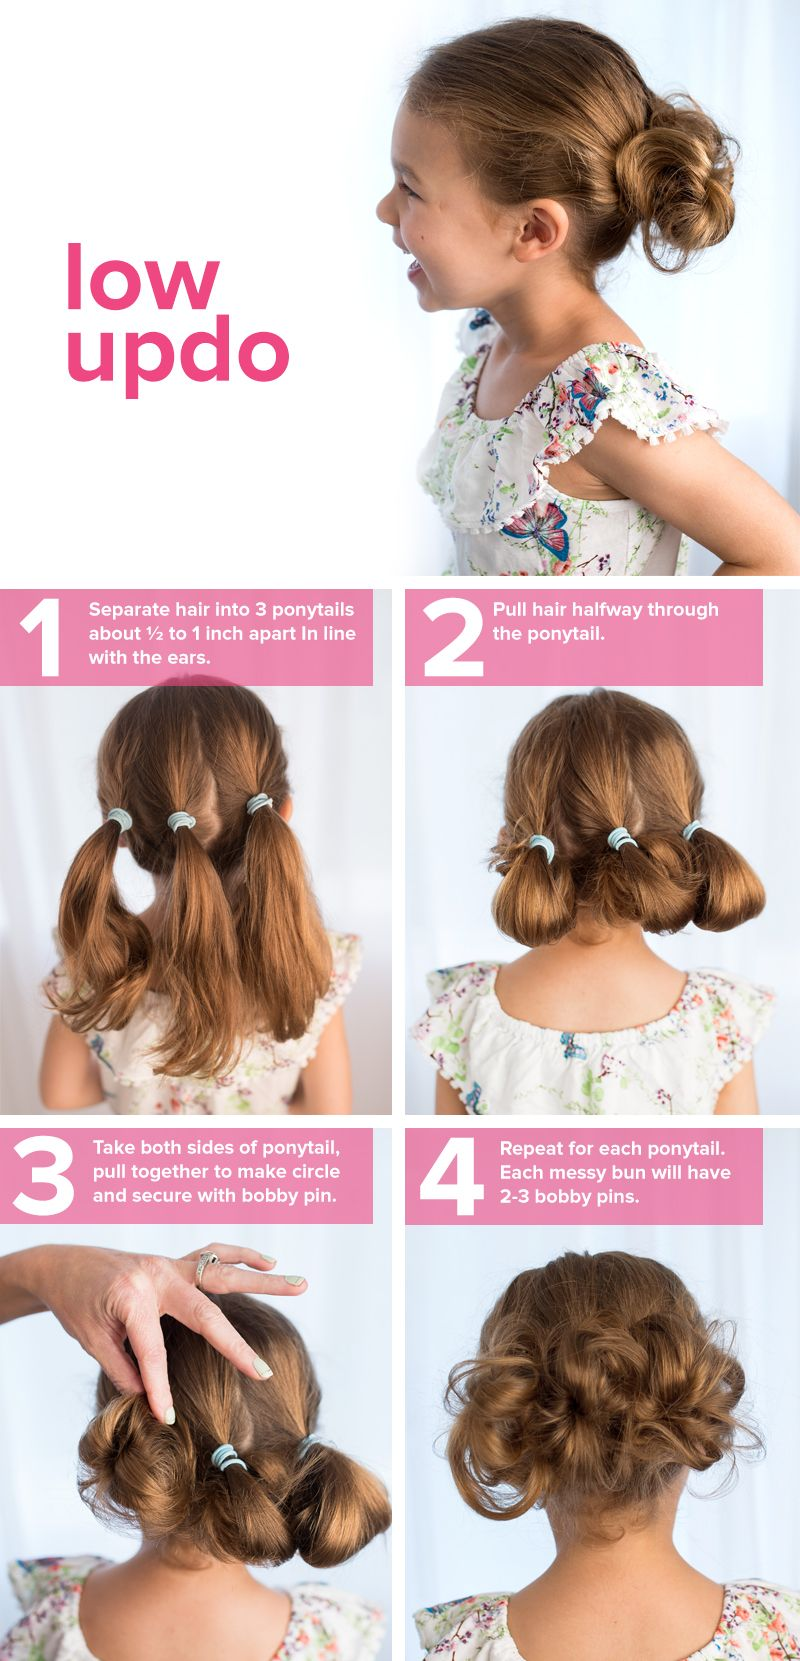 Easy And Cute Hairstyles Endearing 5 Fast Easy Cute Hairstyles For Girls  Pinterest  Low Updo Updo